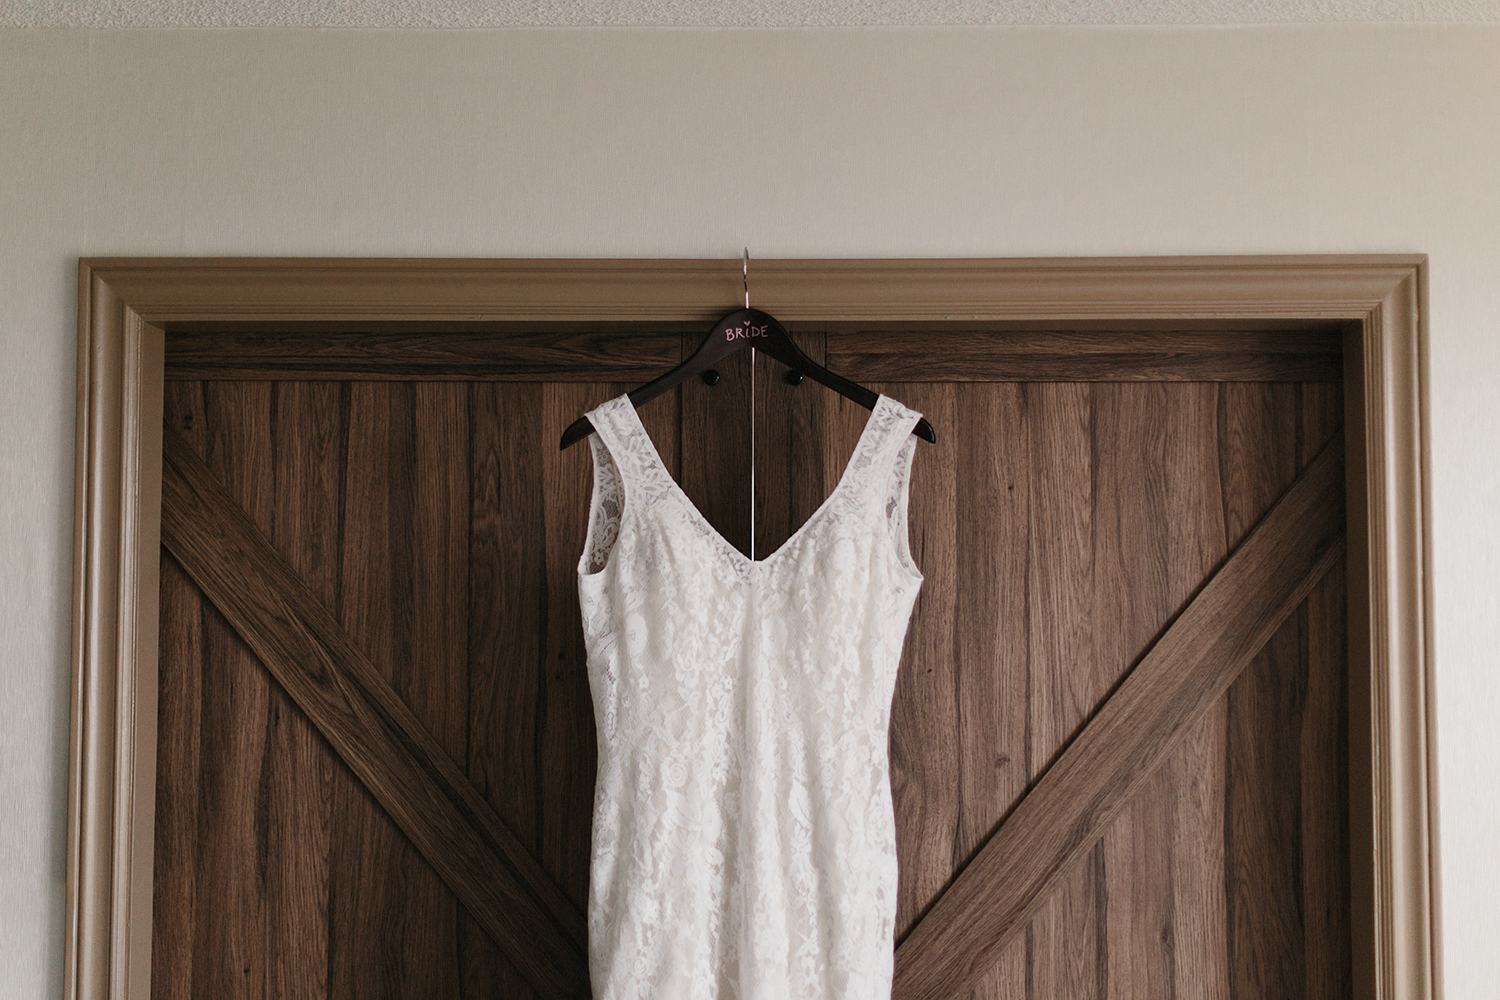 wedding-dress-hanging-on-the-wall-from-allure-bridals-london-ontario-wedding.jpg